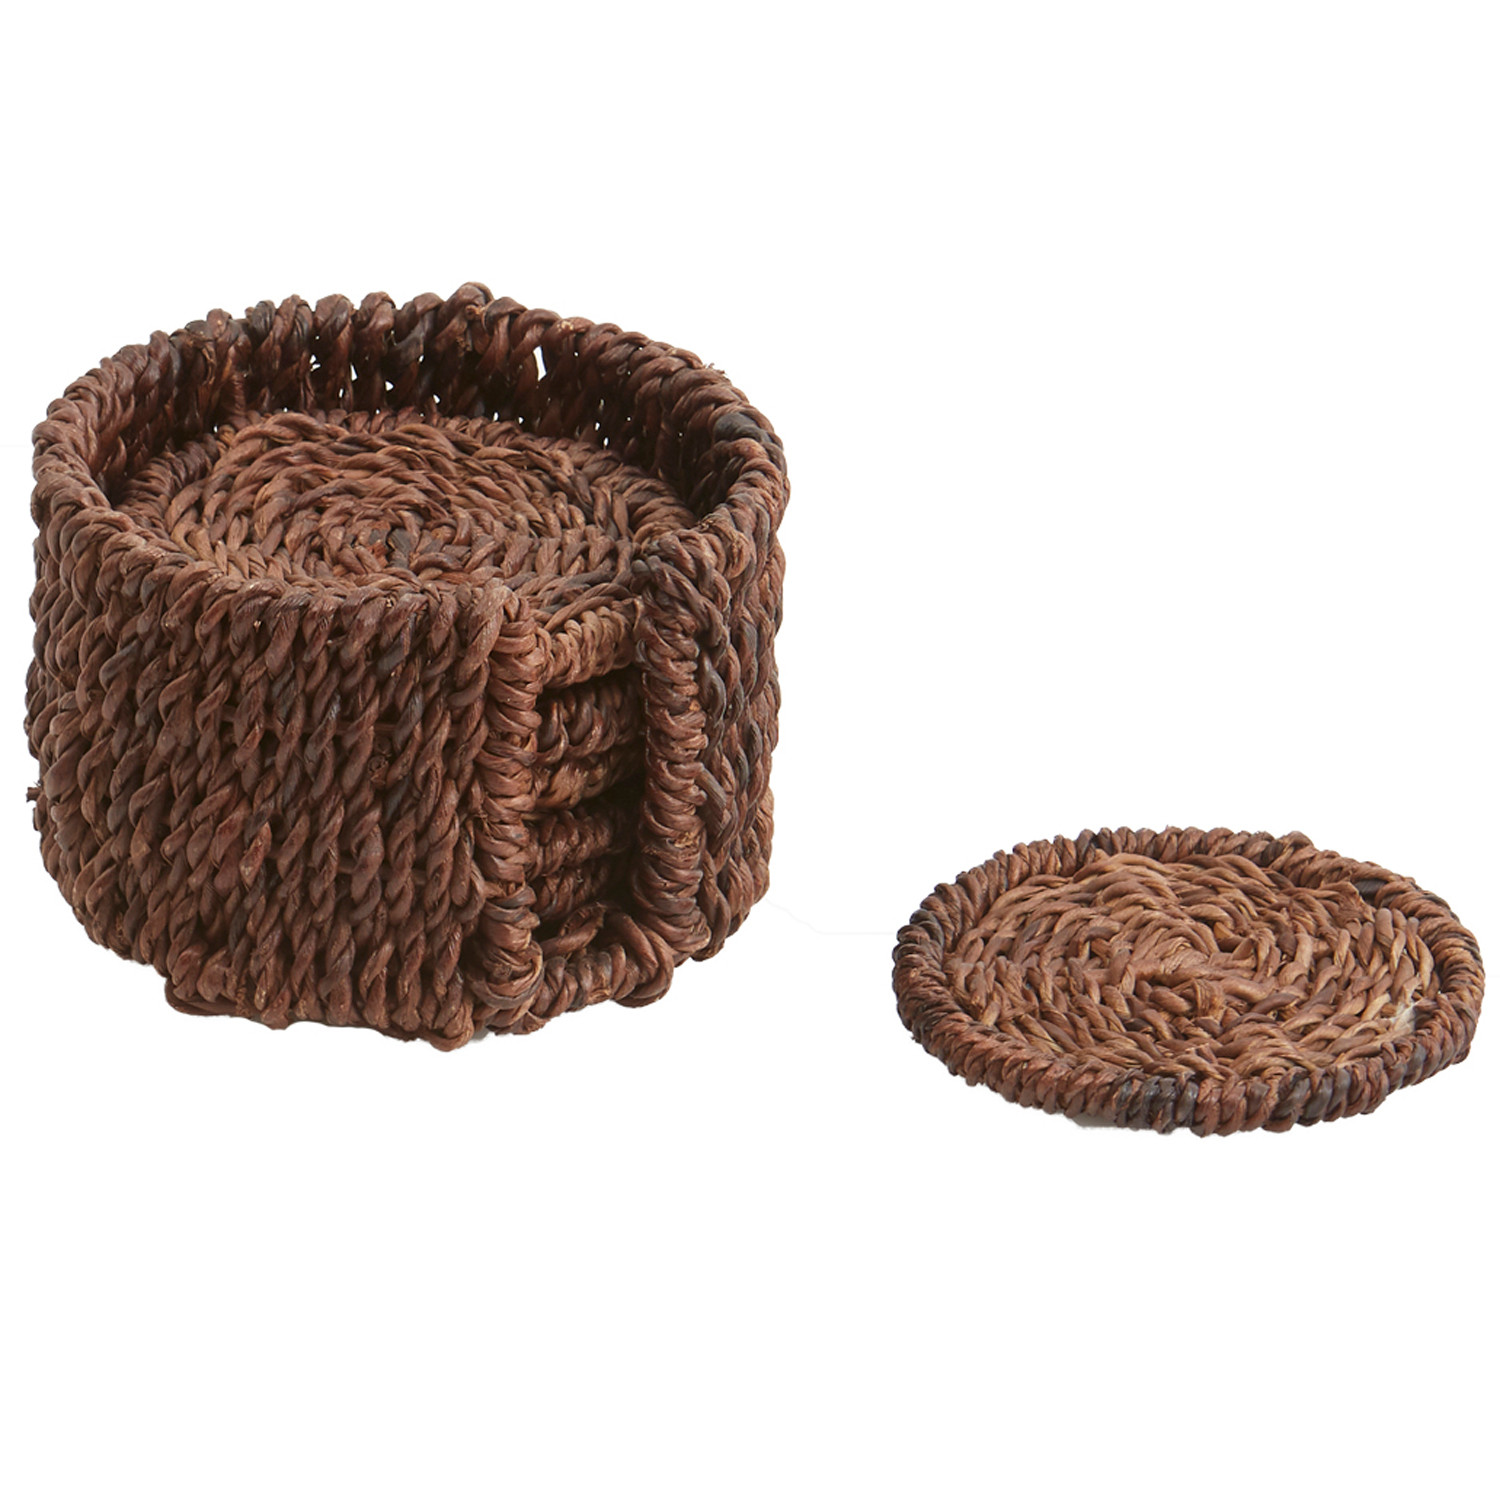 """Coaster - Round, 5 1/2"""" x 5 1/2"""", Abaca Collection"""